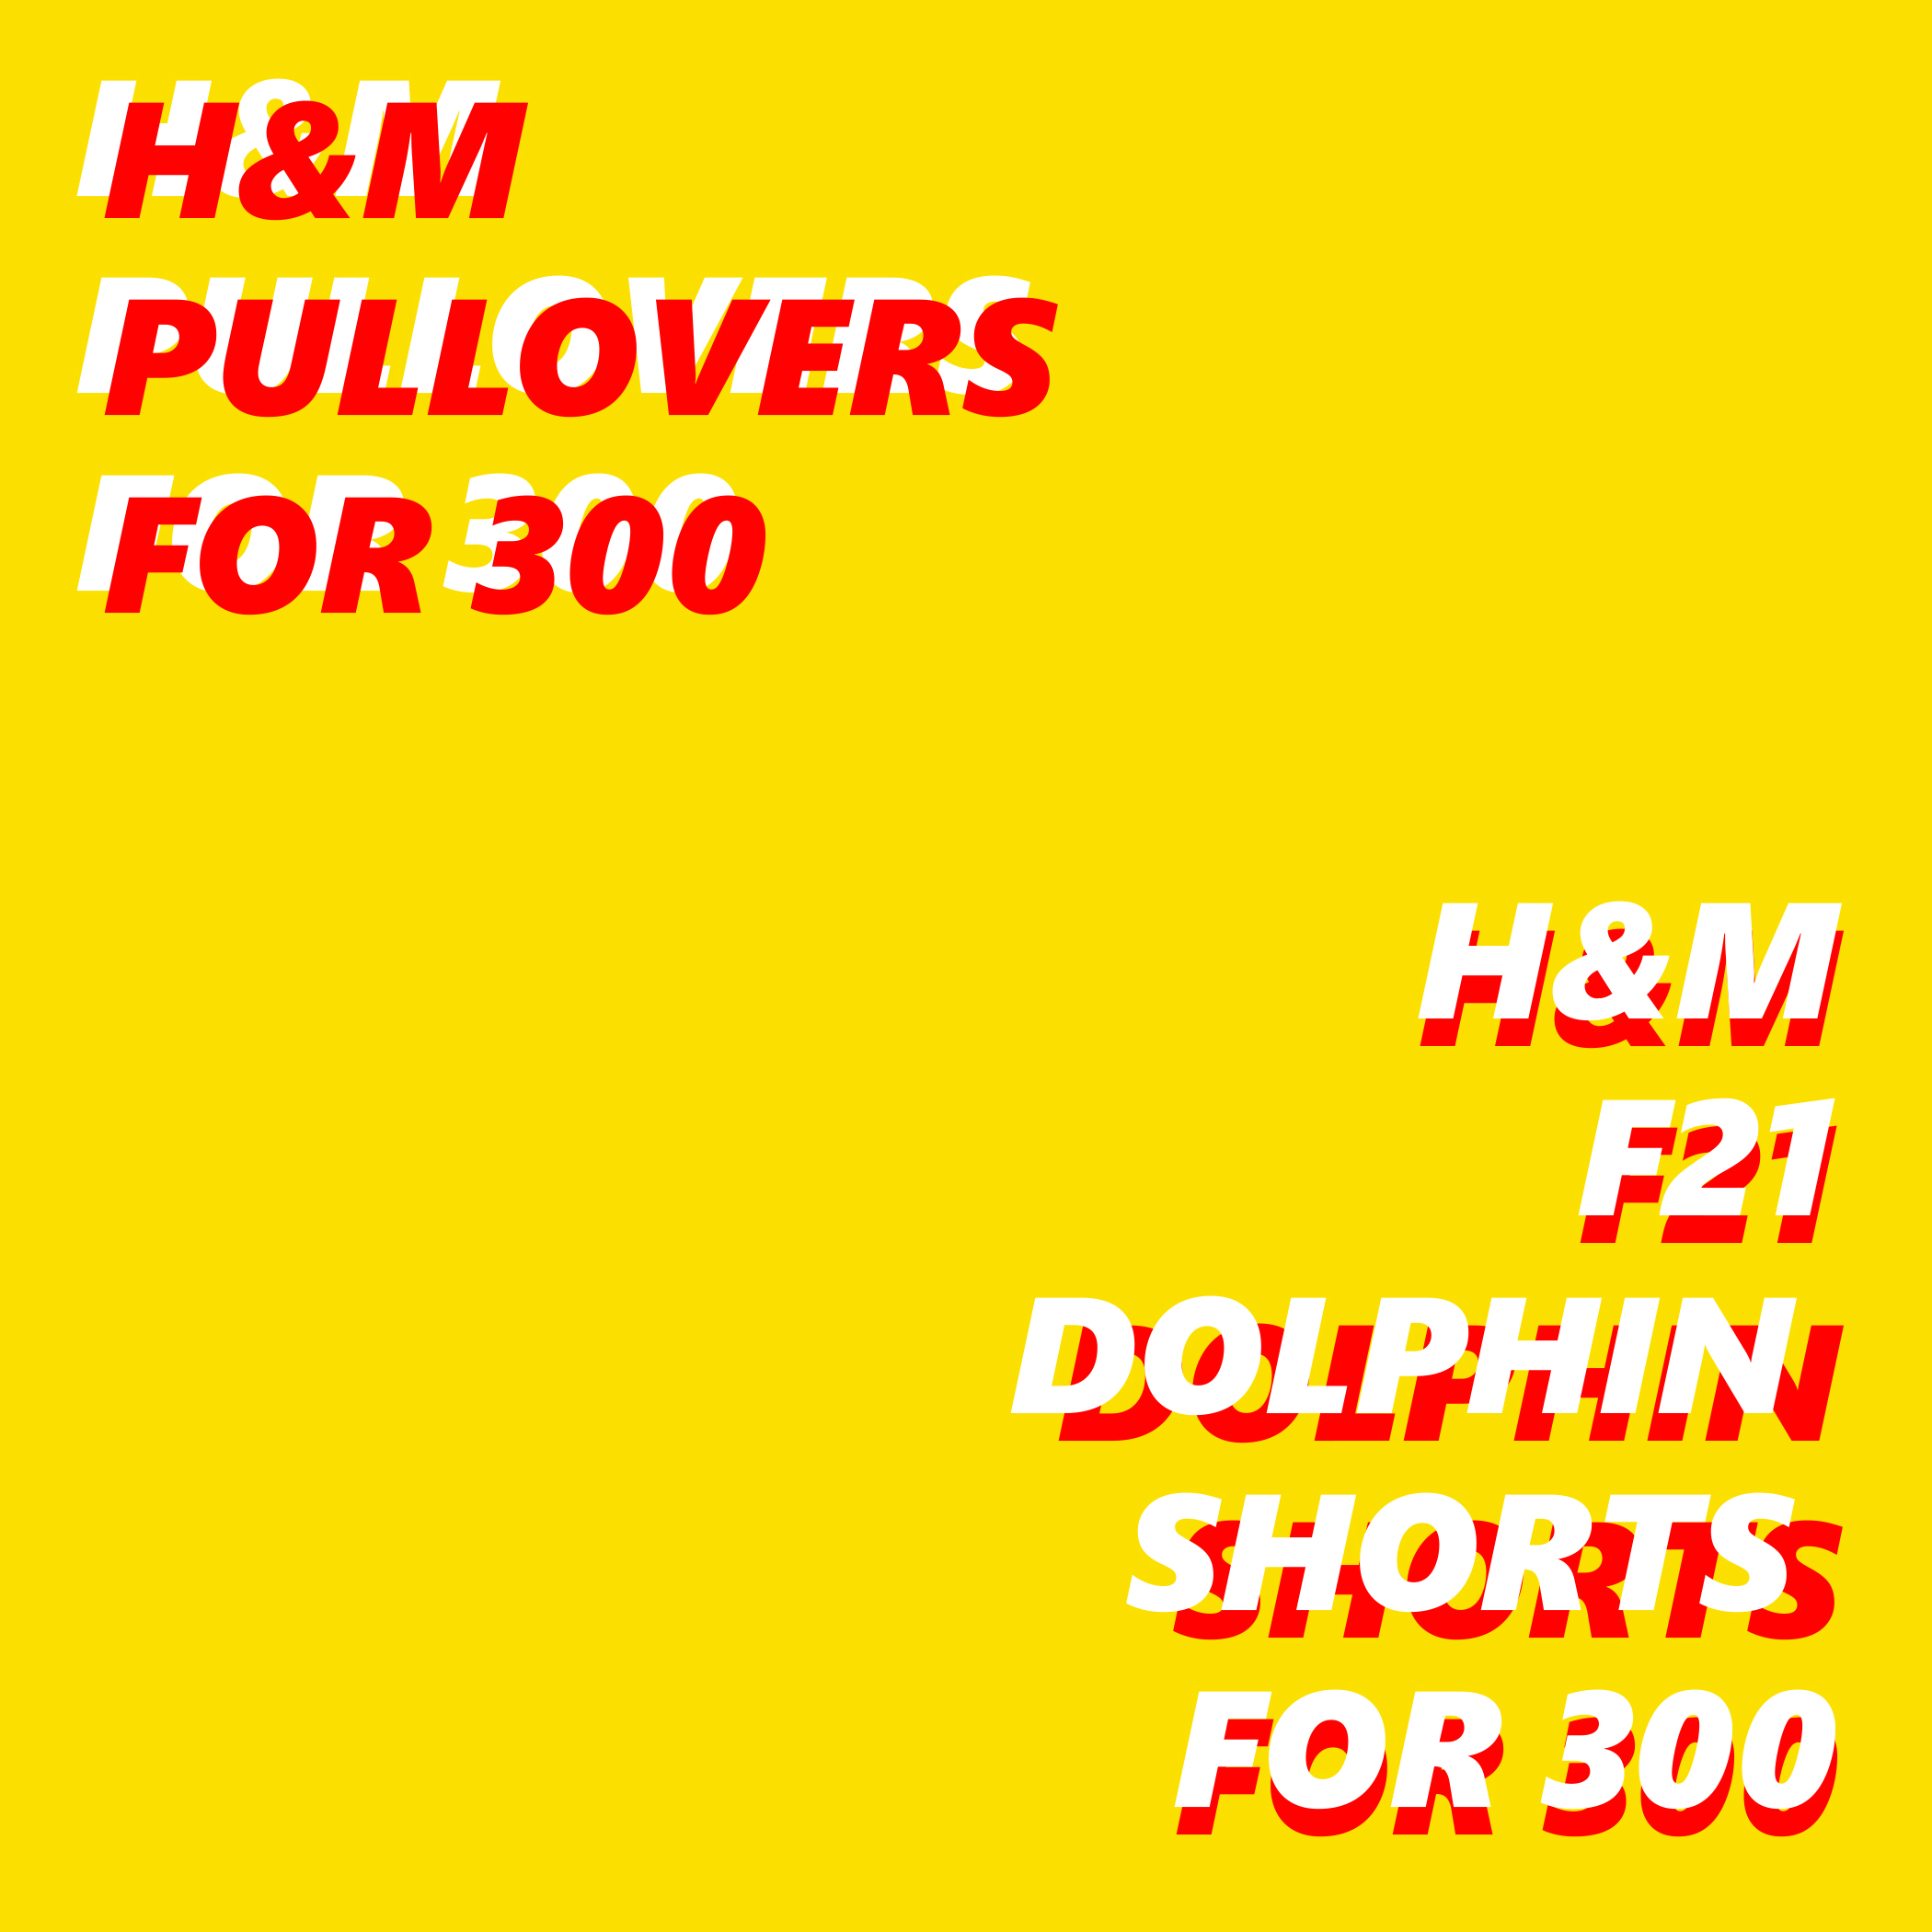 pullovers, dolphin shorts